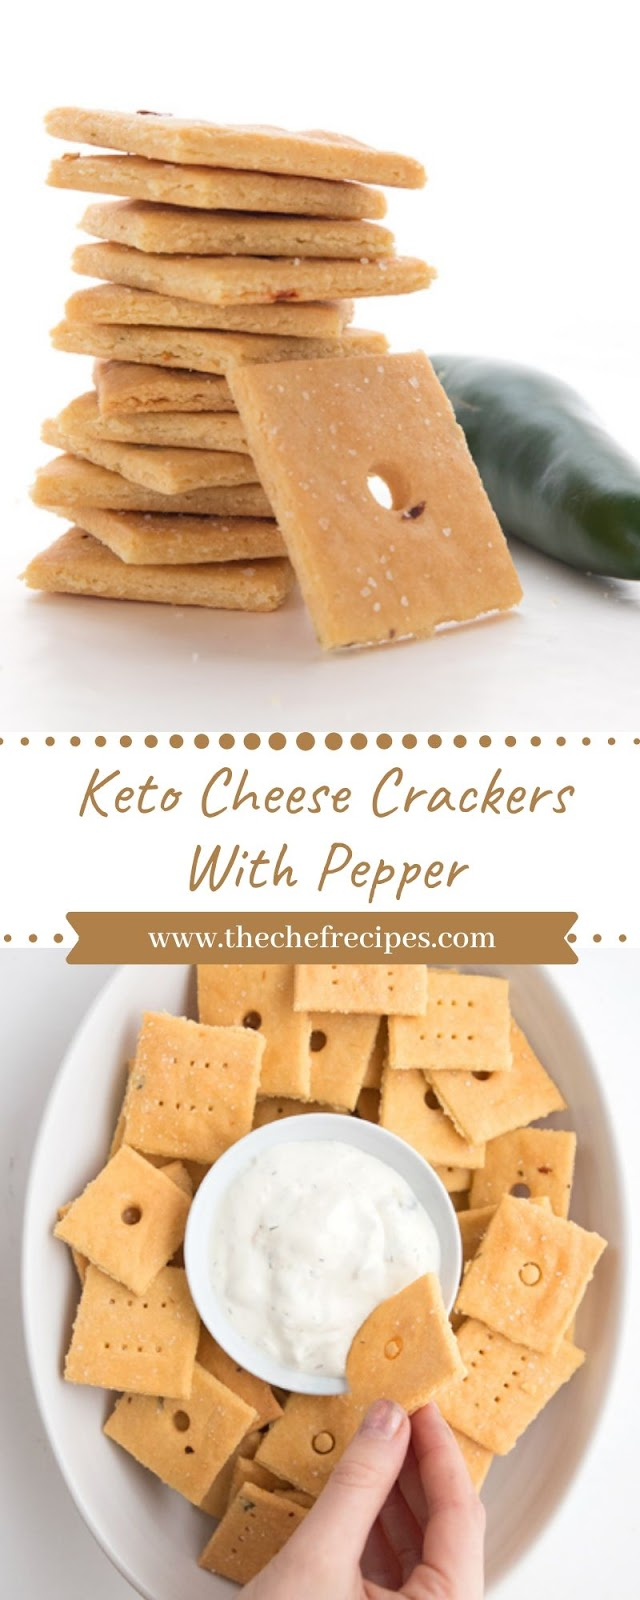 Keto Cheese Crackers With Pepper